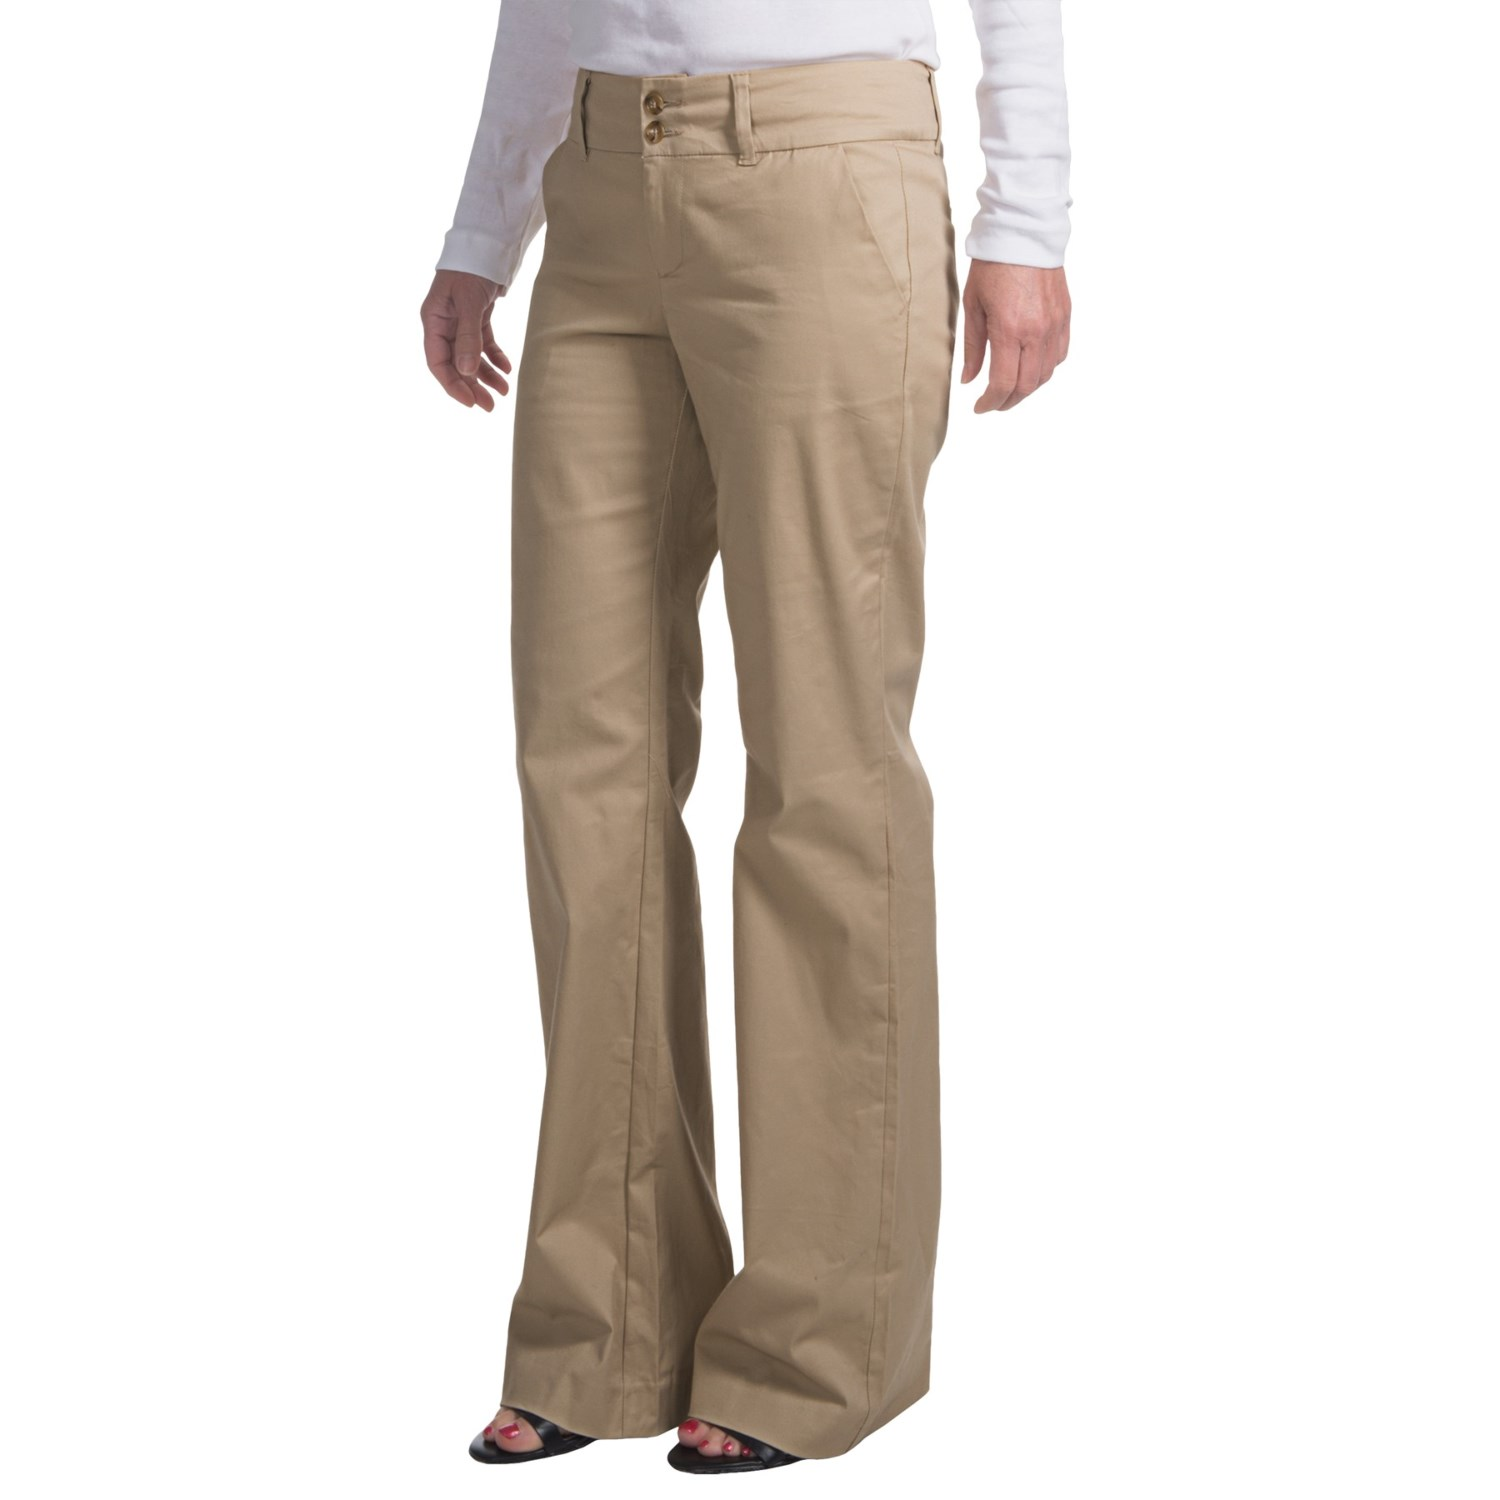 Get the best deals on gloria vanderbilt khakis pants and save up to 70% off at Poshmark now! Whatever you're shopping for, we've got it.